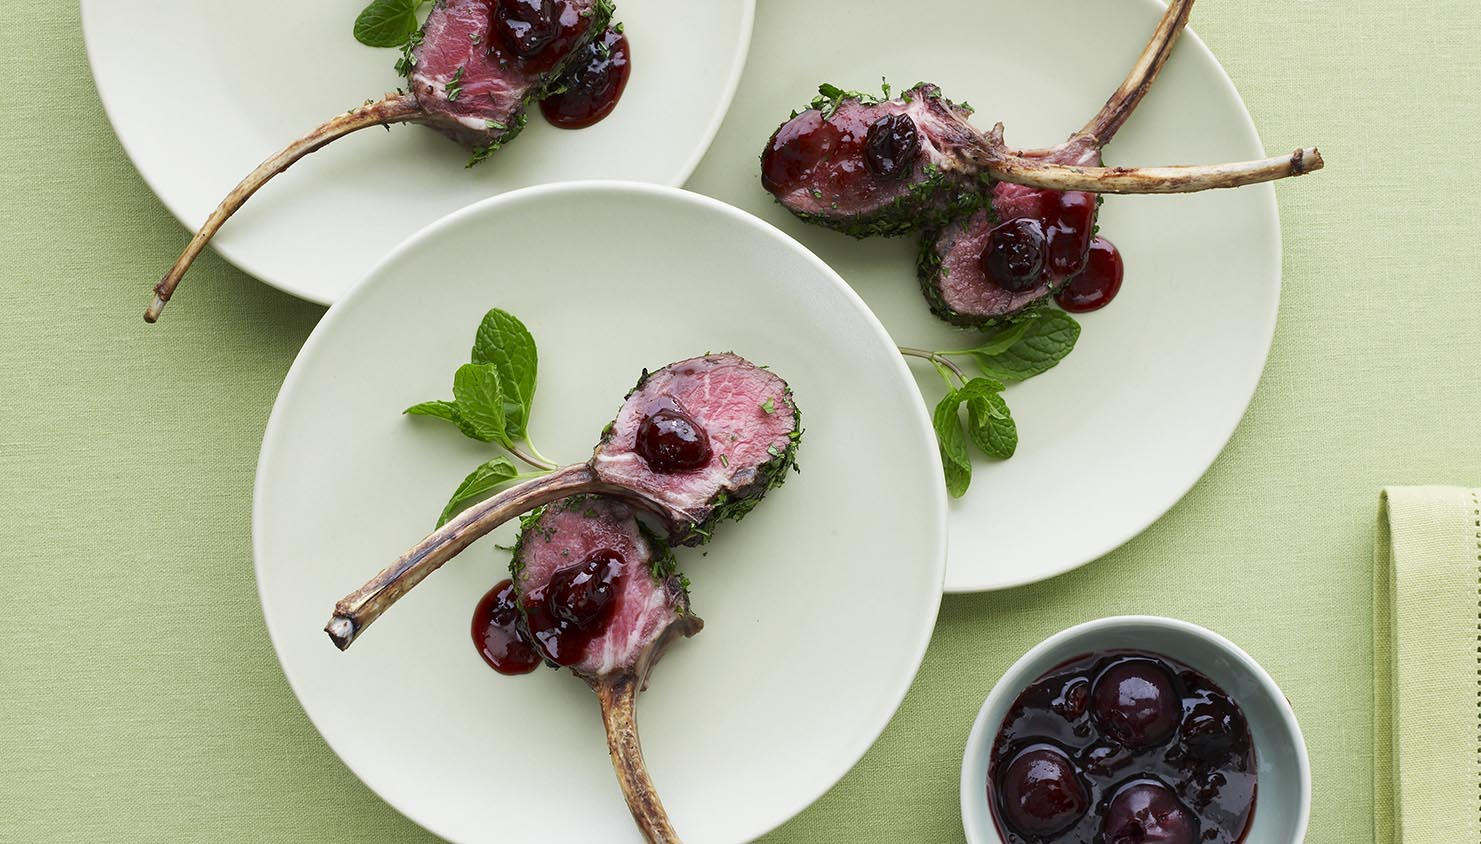 Catered Events - Party Foods to Table Settings